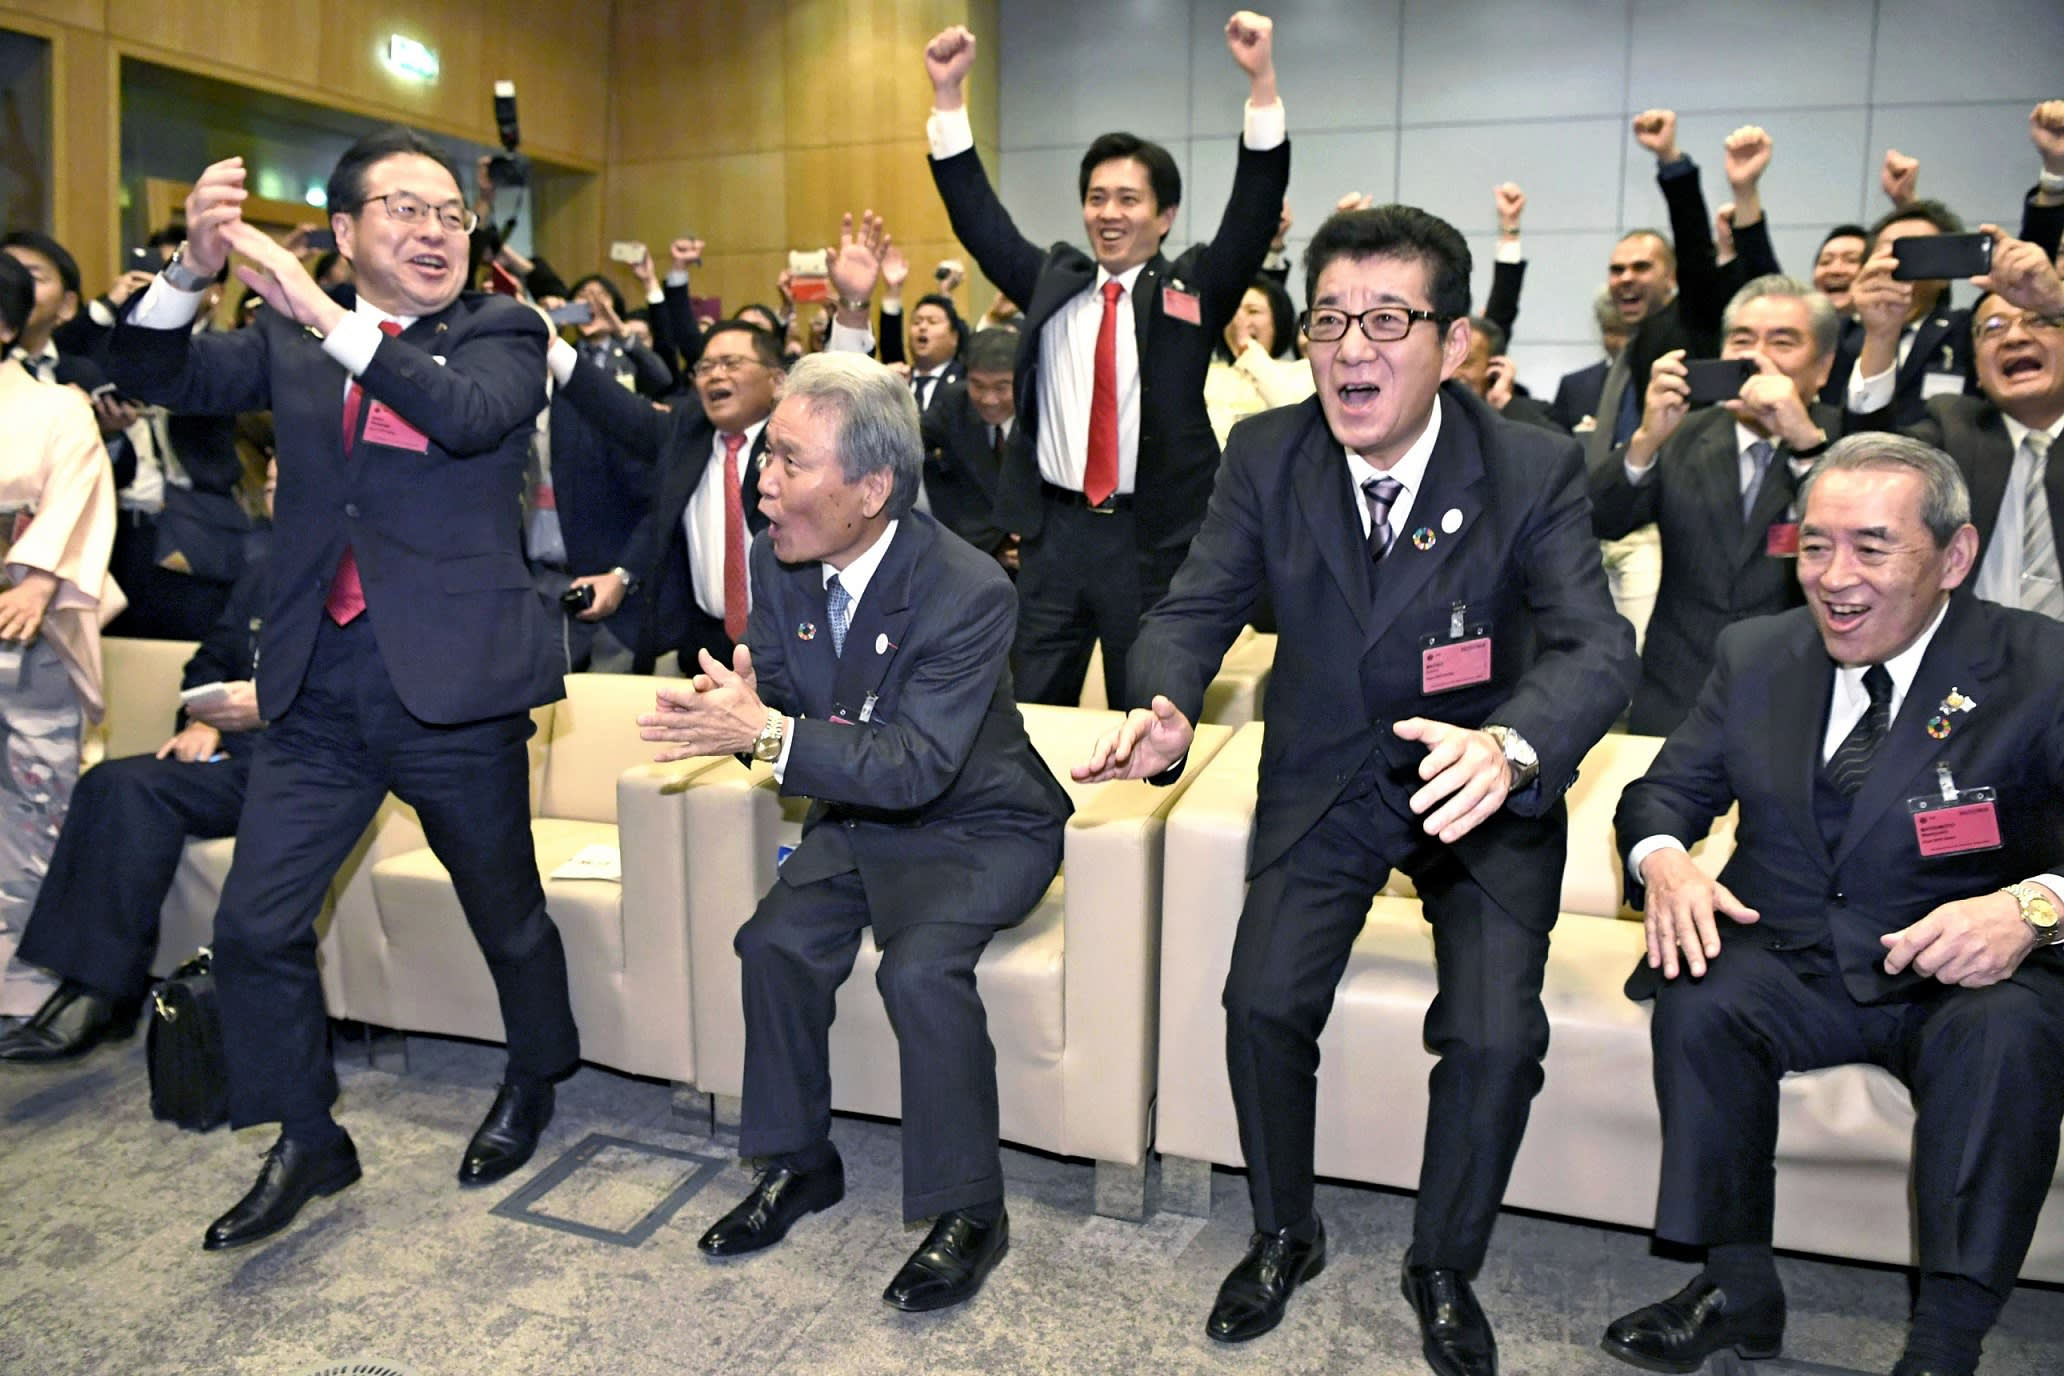 Keidanren honorary chair Sadayuki Sakakibara, second from left, celebrates with other Japanese government officials and business leaders after the host city for the World Expo in 2025 was announced.